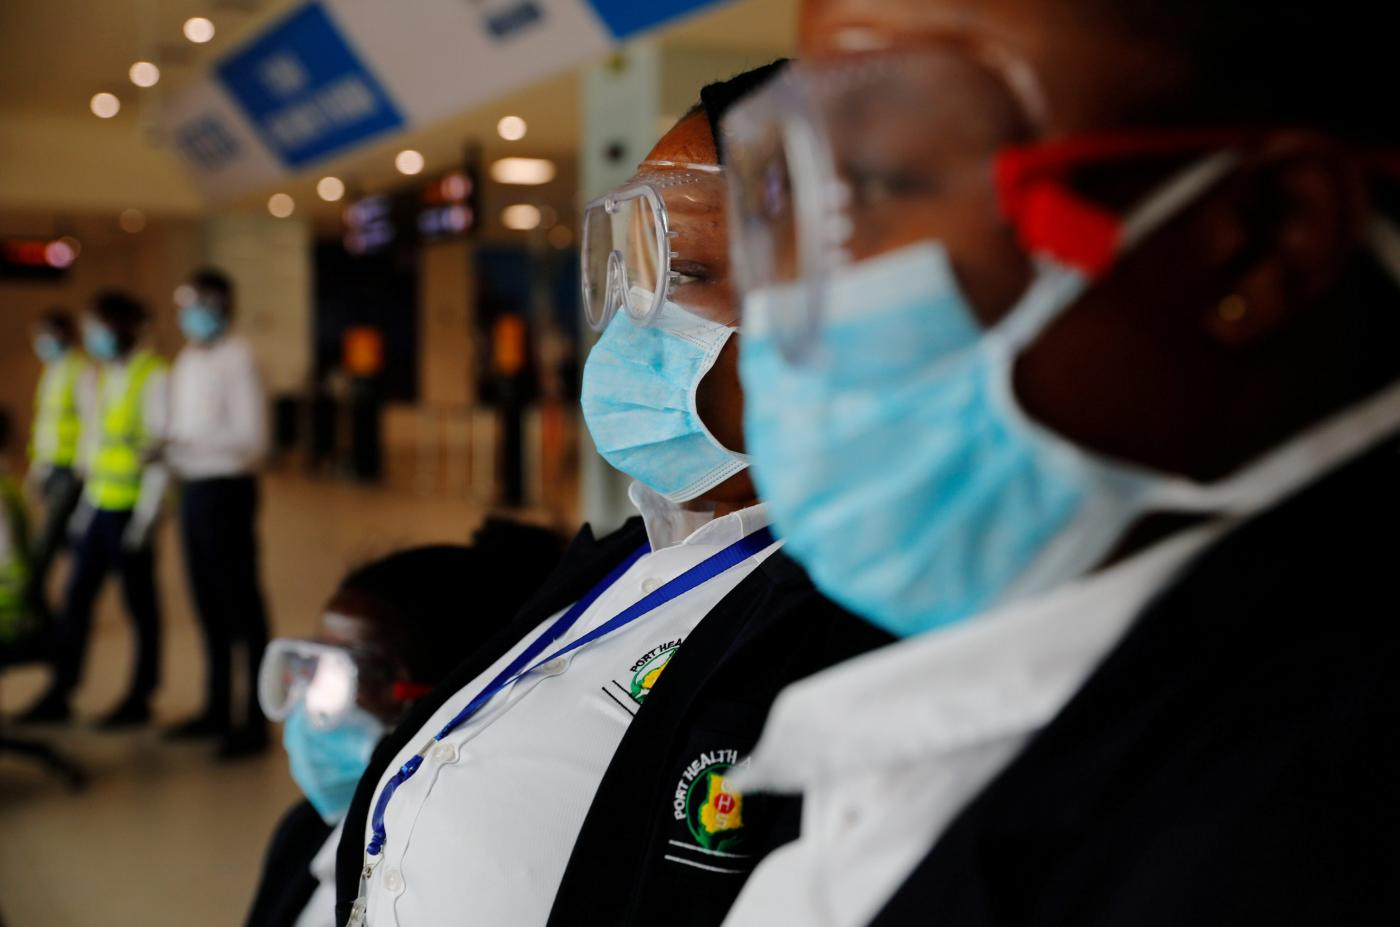 Chinese middlemen are stockpiling facemasks from Kenya and Tanzania for export to China